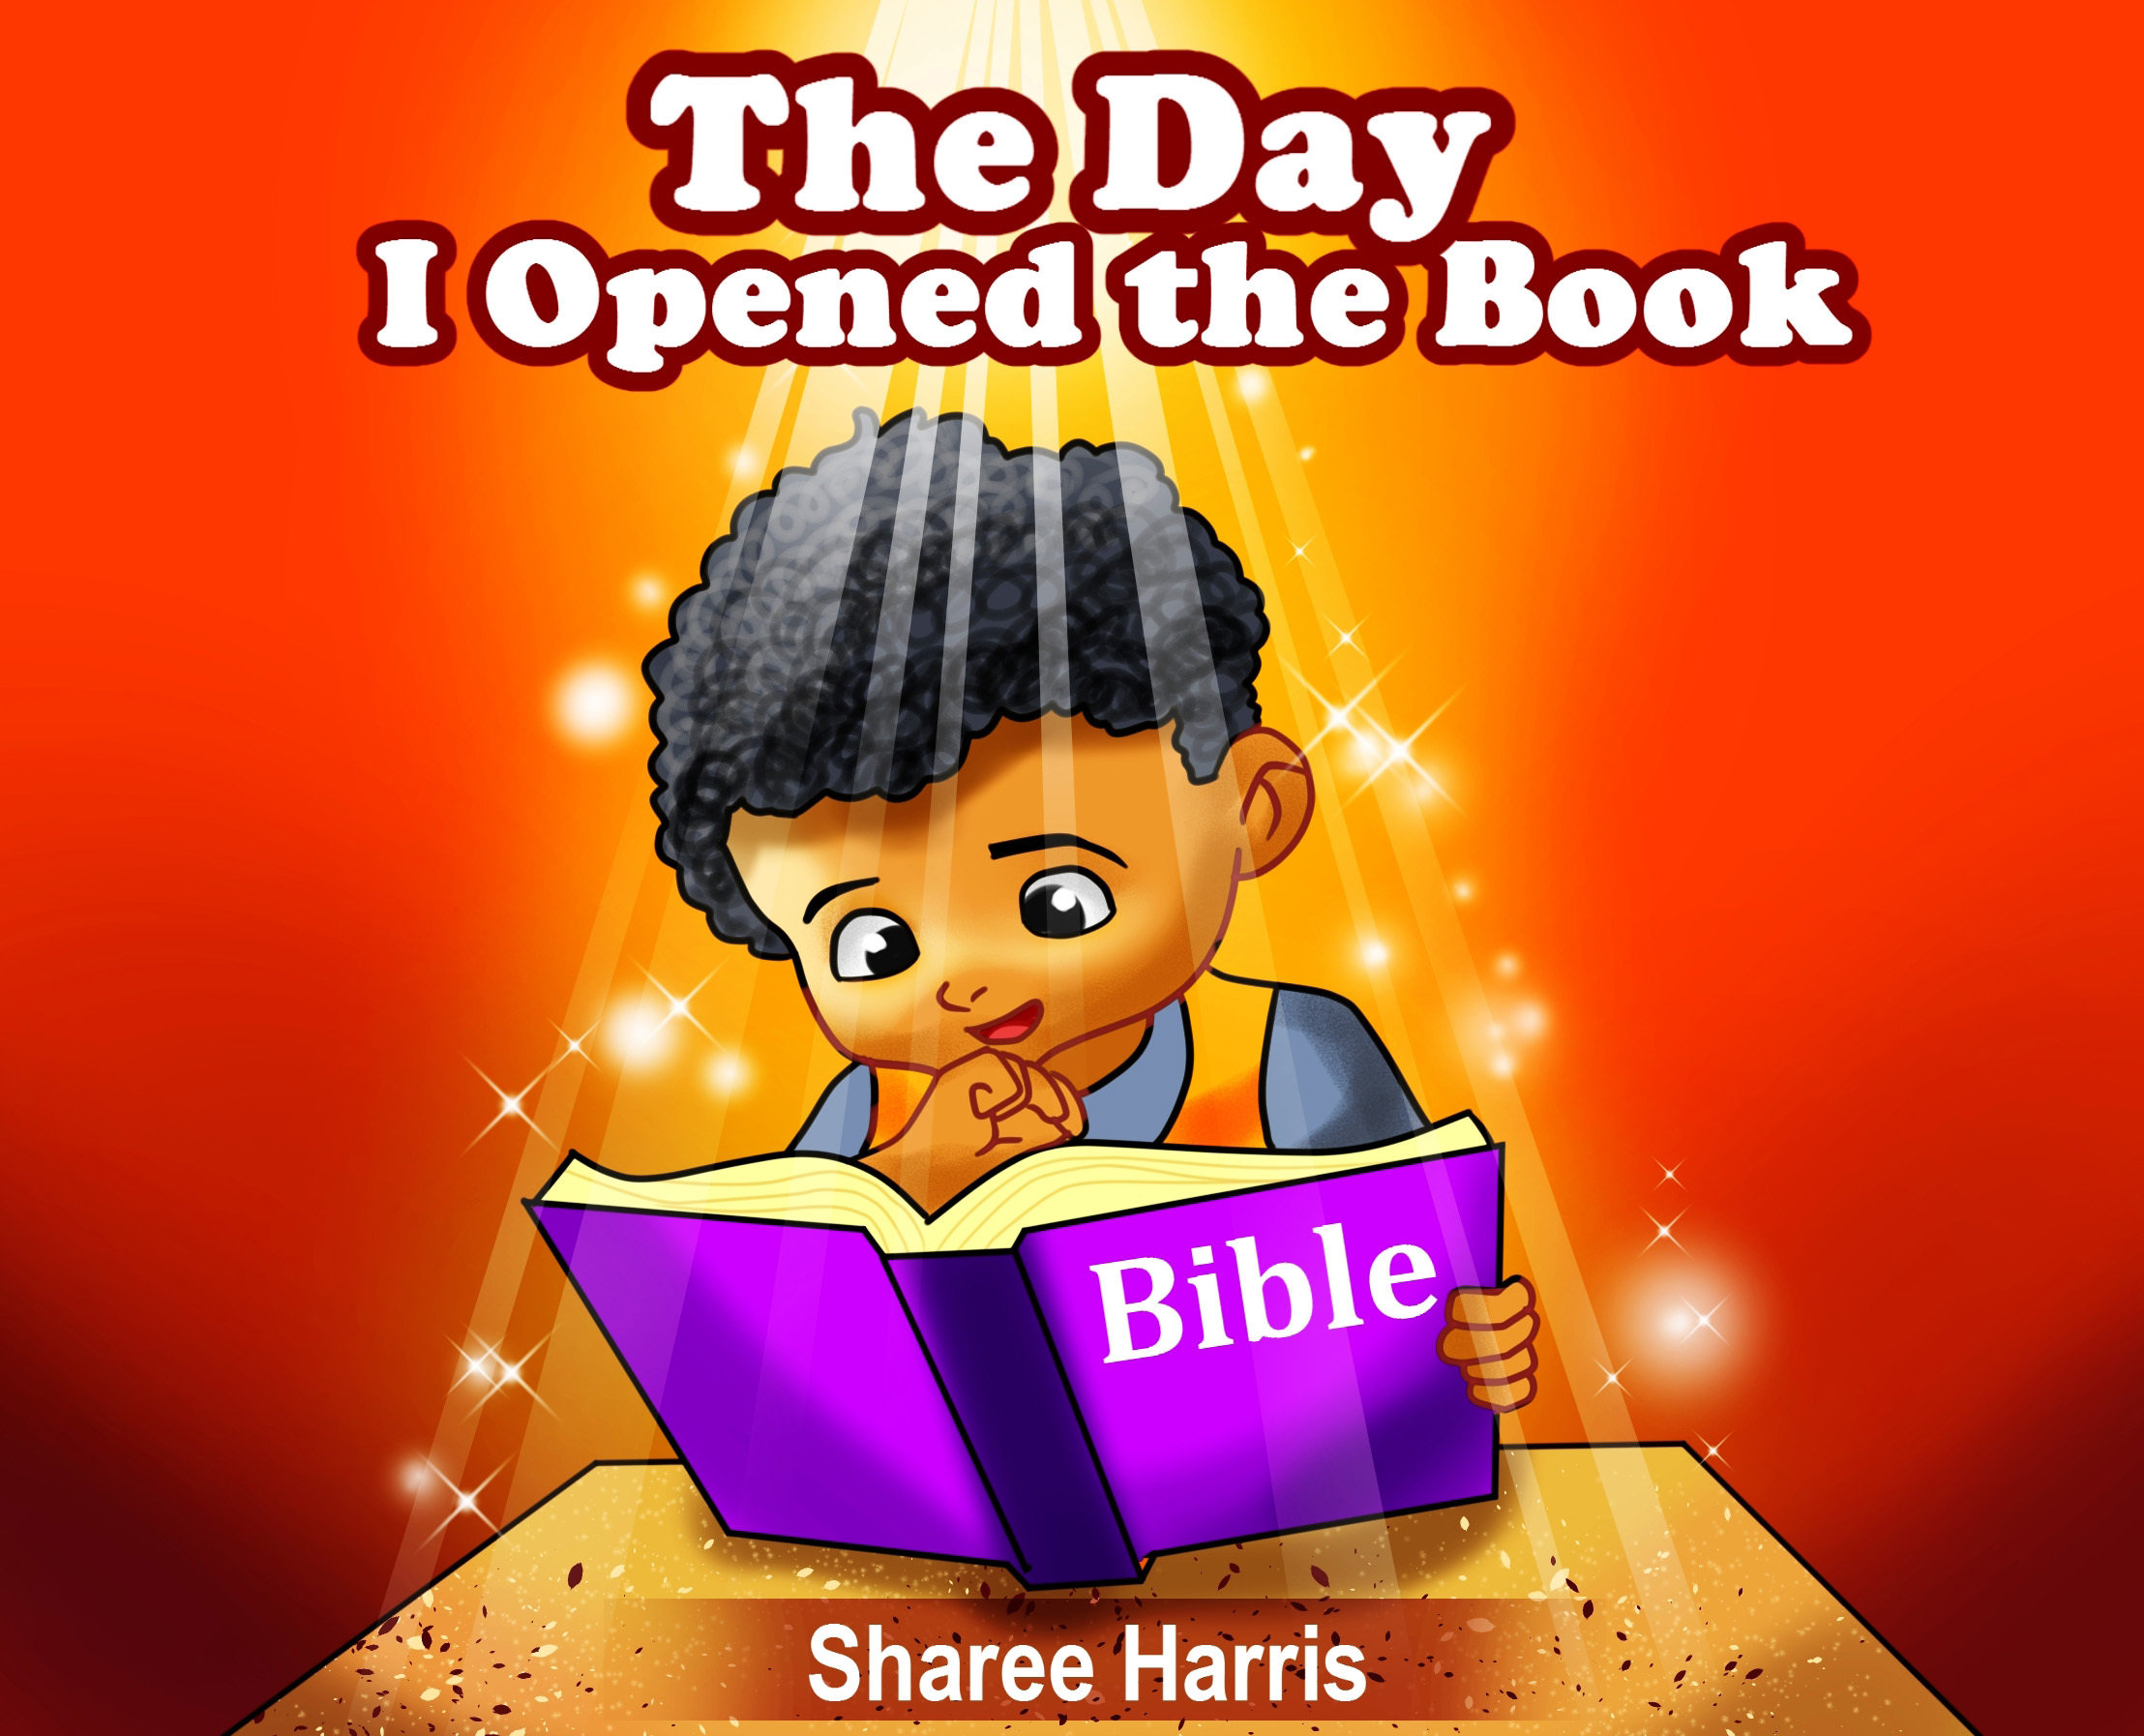 The Day I Opened the Book by Sharee Harris 978-1682734797